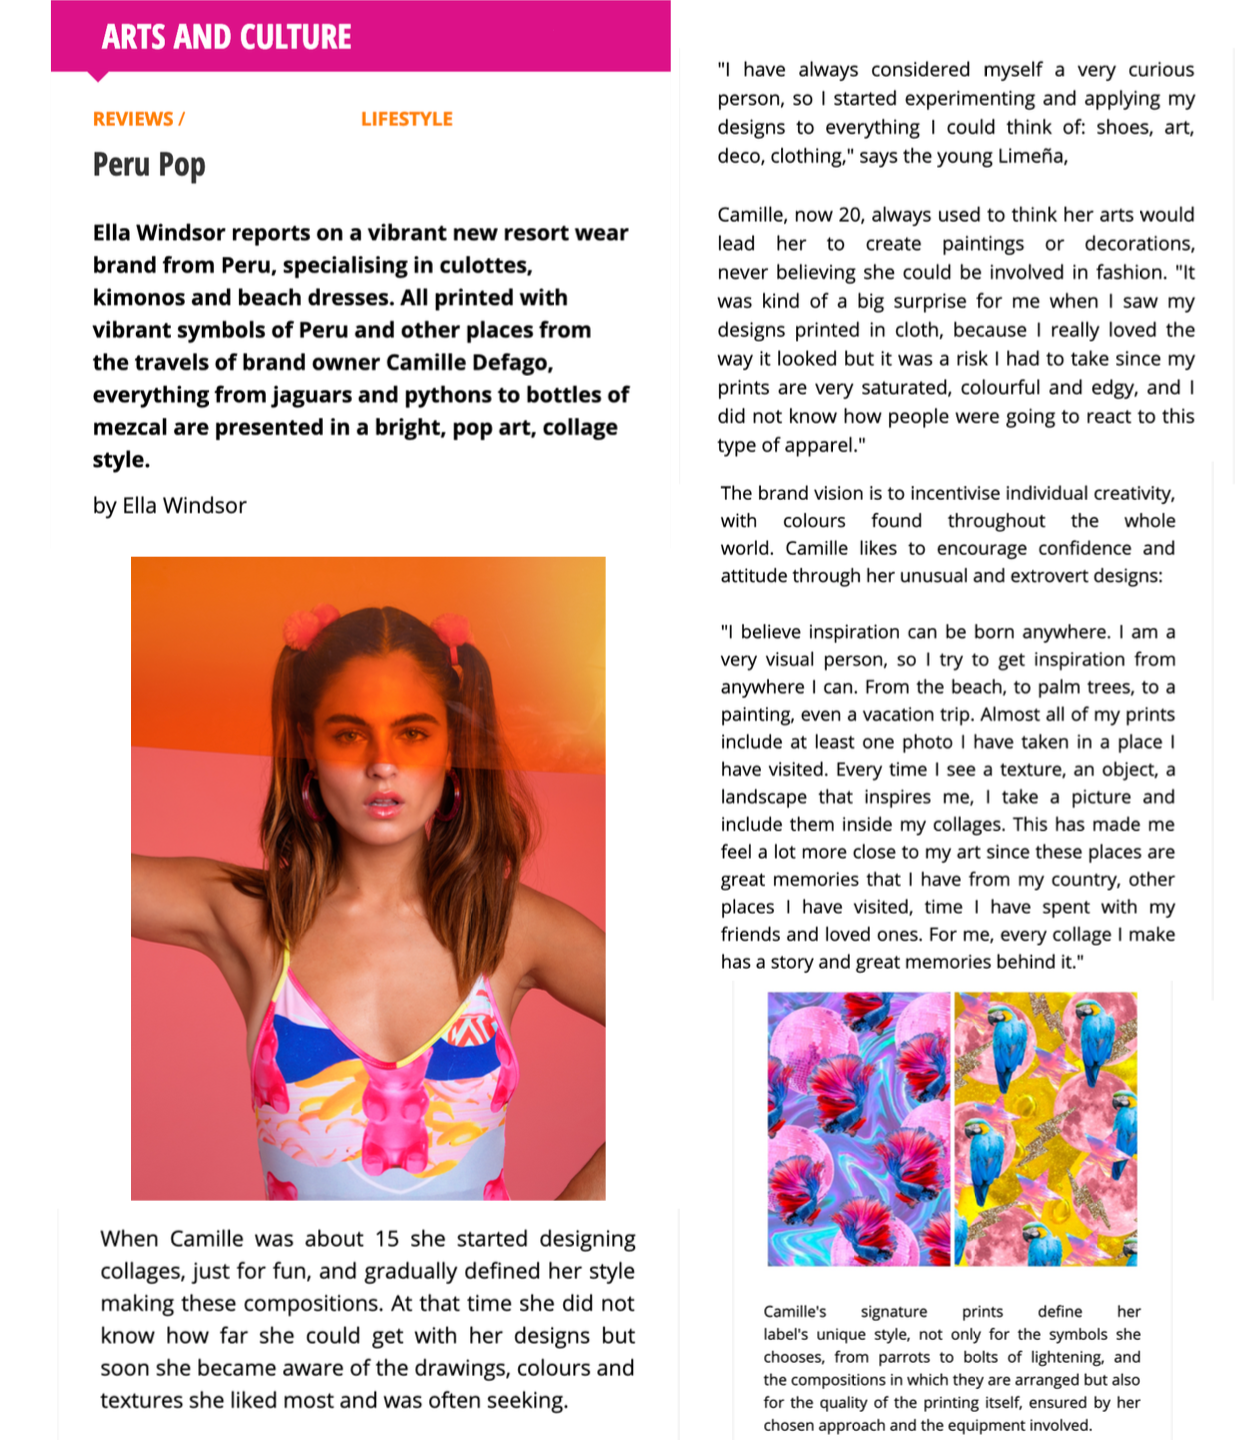 Article written by Ella Windsor for Latino Life Magazine